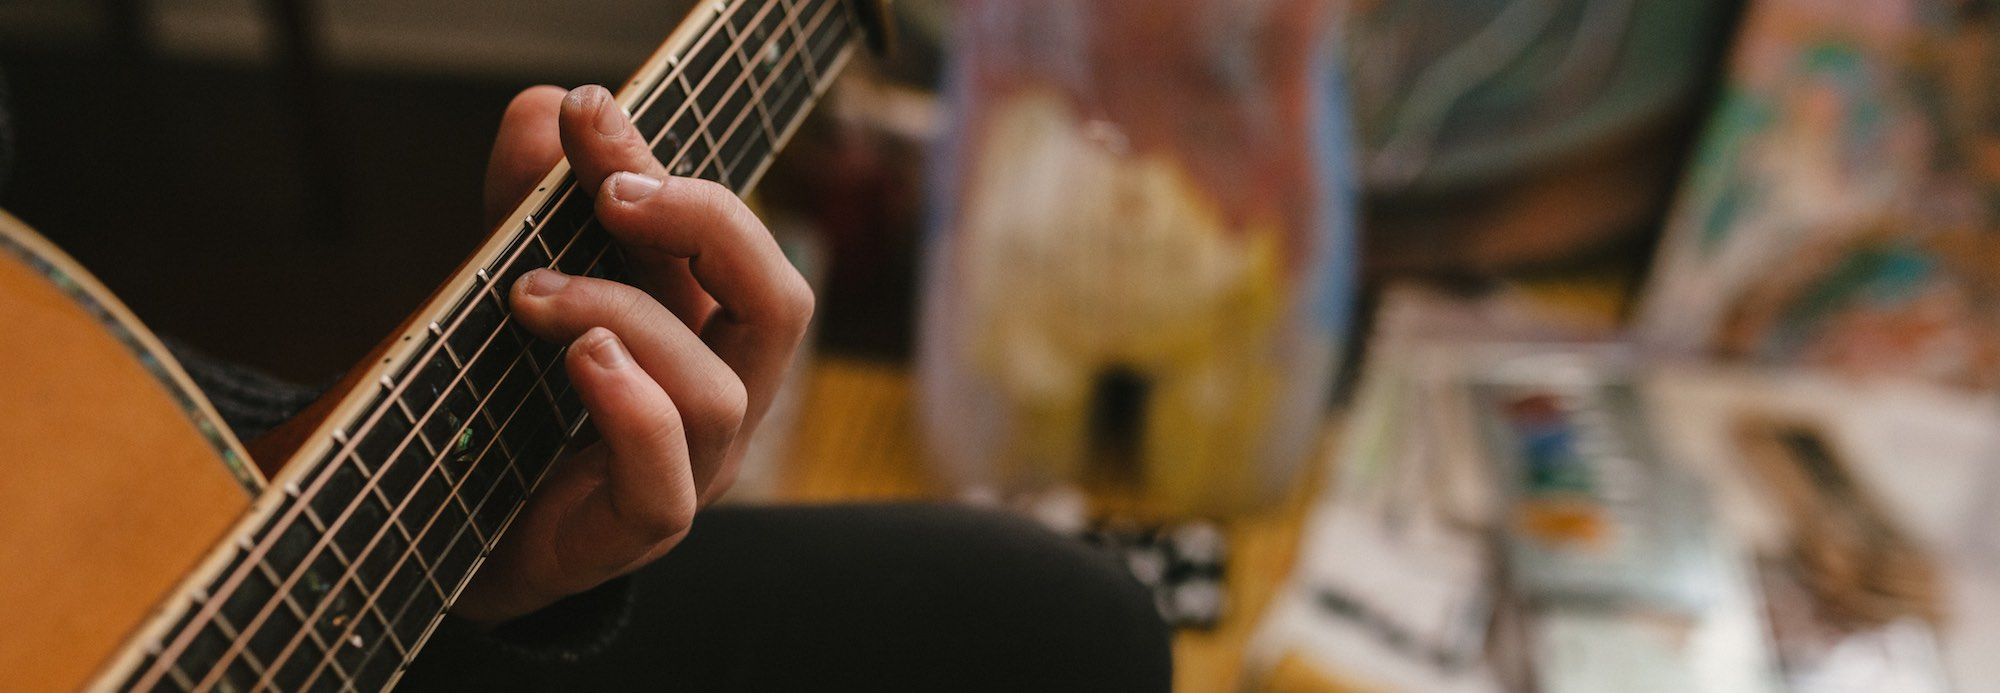 A photo of a hand on the fingerboard of a steel-stringed acoustic guitar, with a blurred background scene of objects in the room. The fingernails on the hand have been bitten very short.